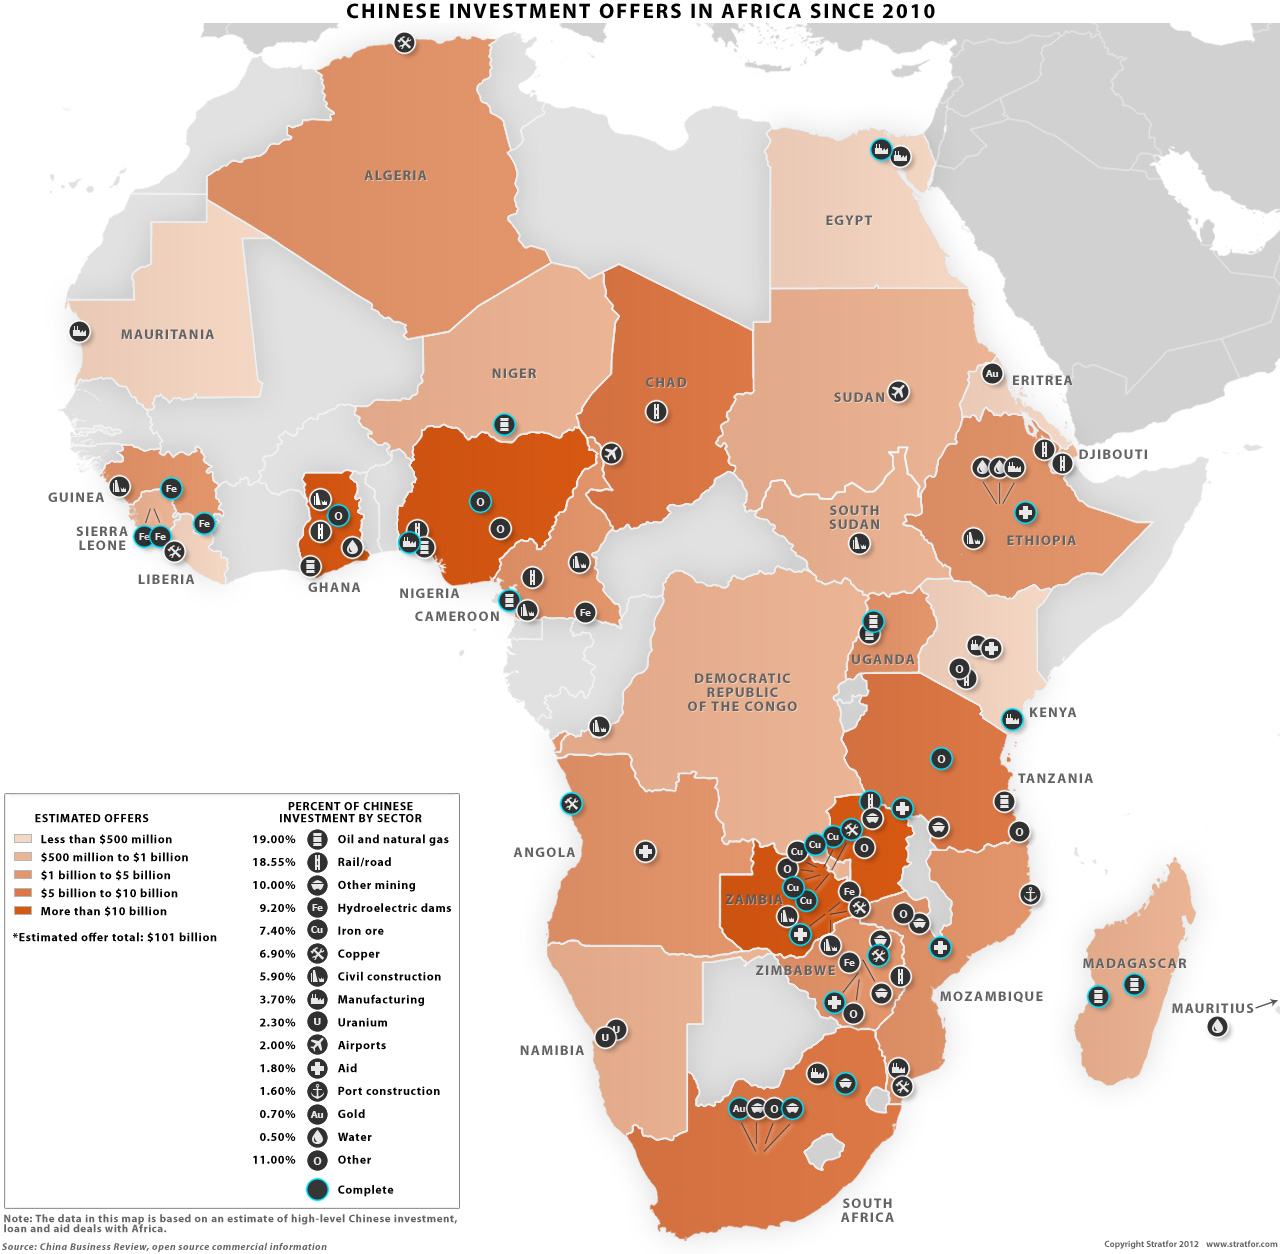 Chinese Investment in Africa since 2010